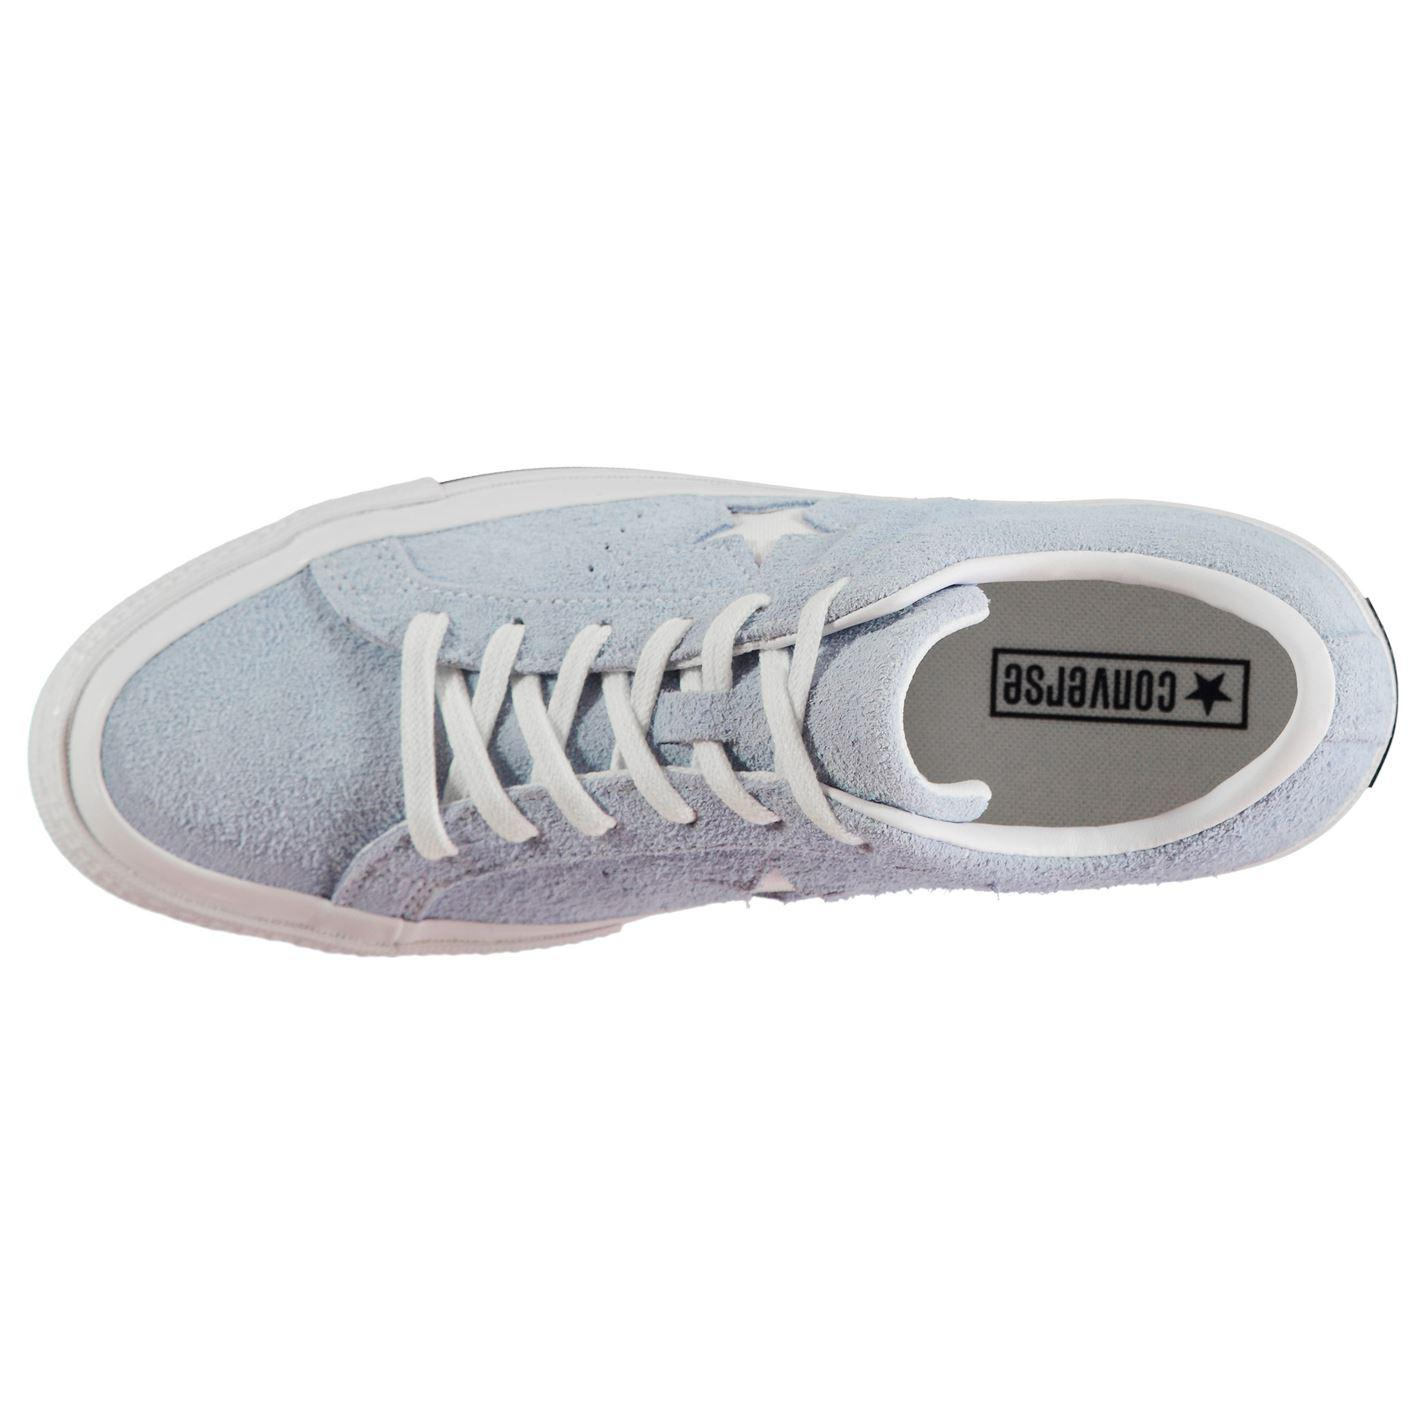 Converse Suede One Star Low Top Trainers for Men